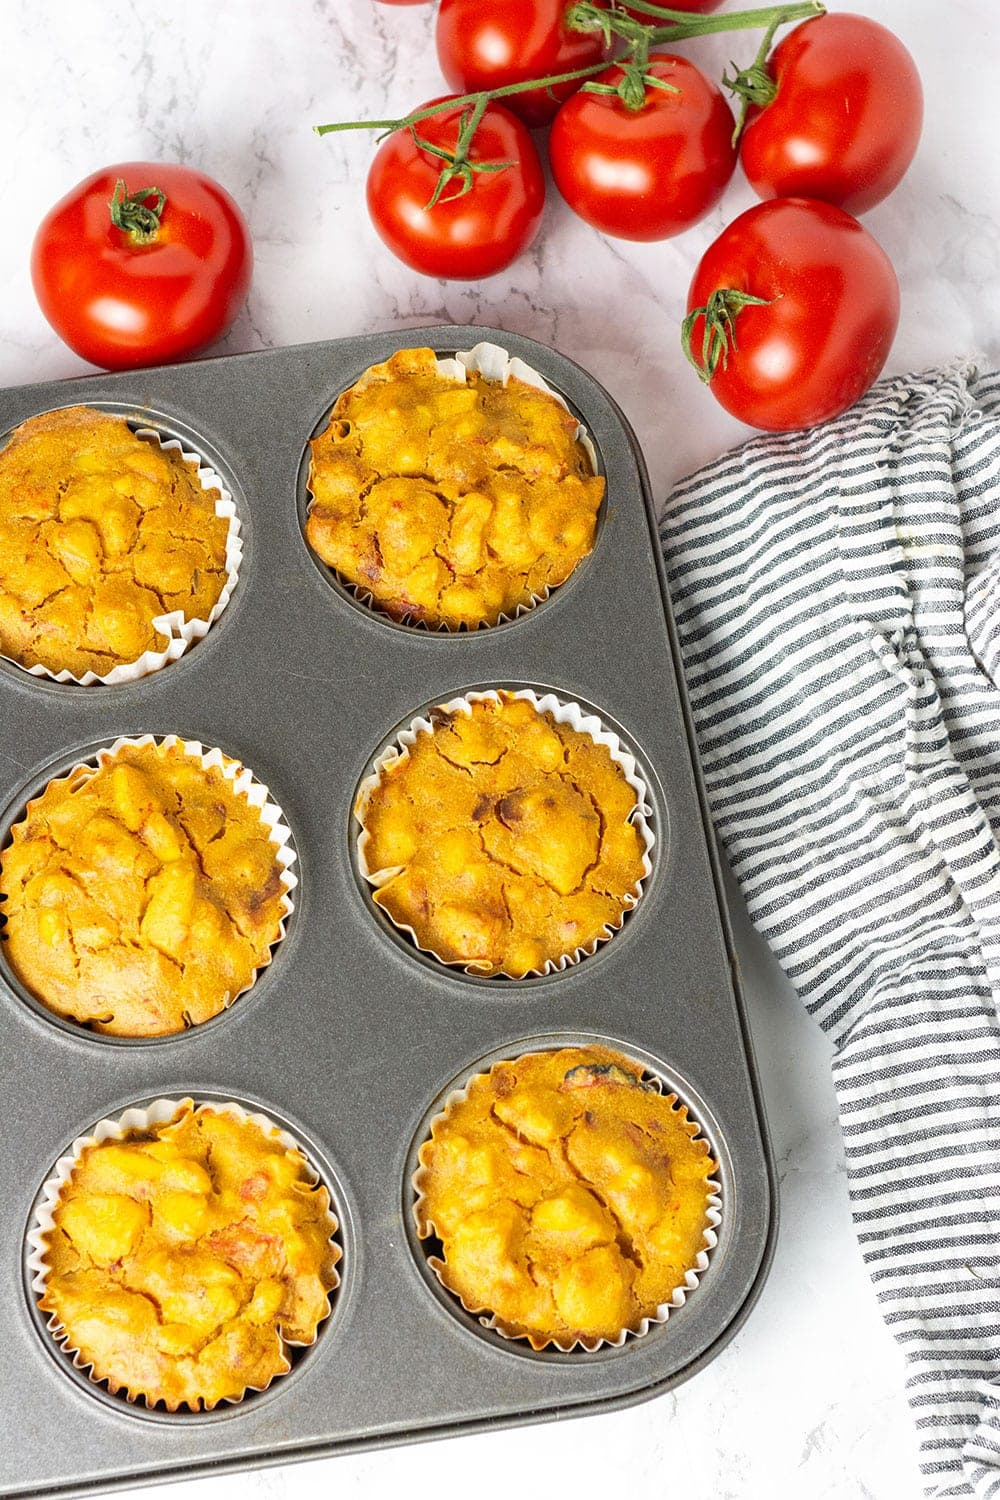 Easy vegan quiche in muffin pan with tomatoes in the background and a black and white stripe napkin to the side on a marbled background